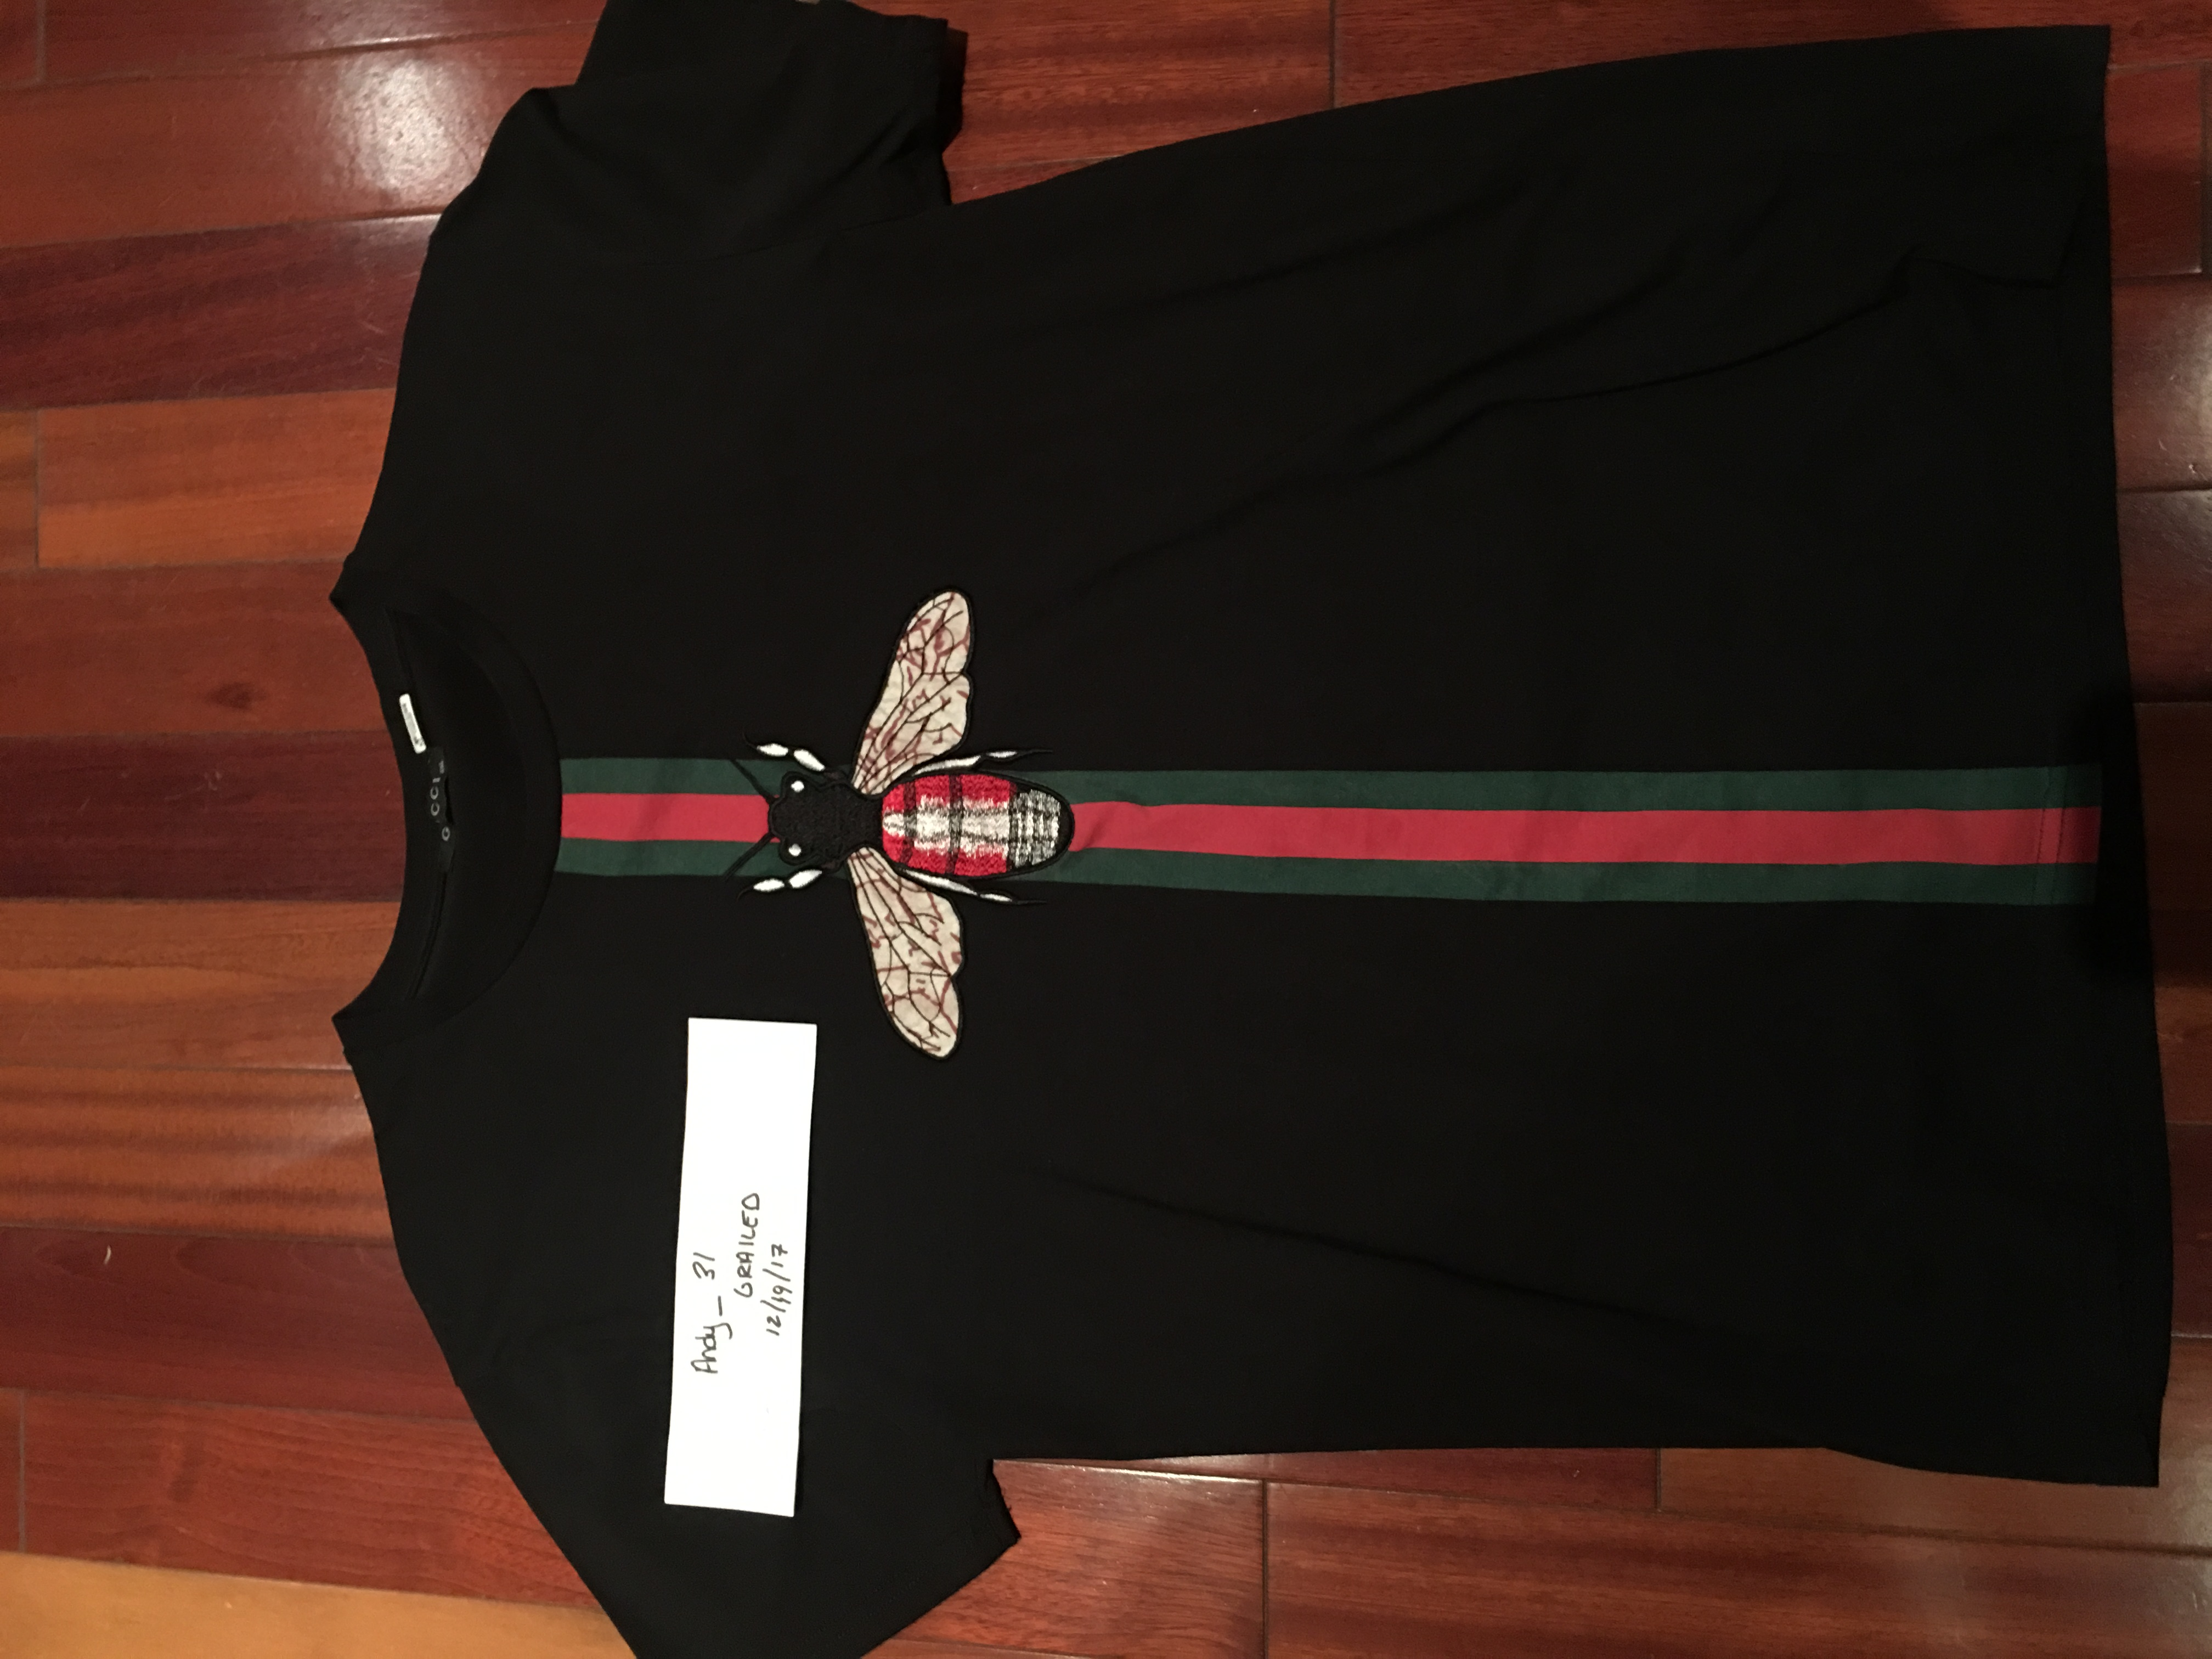 ac9e58241fcc Gucci Gucci Bee Shirt Mint Xxl Gucci Which Is Us Large | Grailed